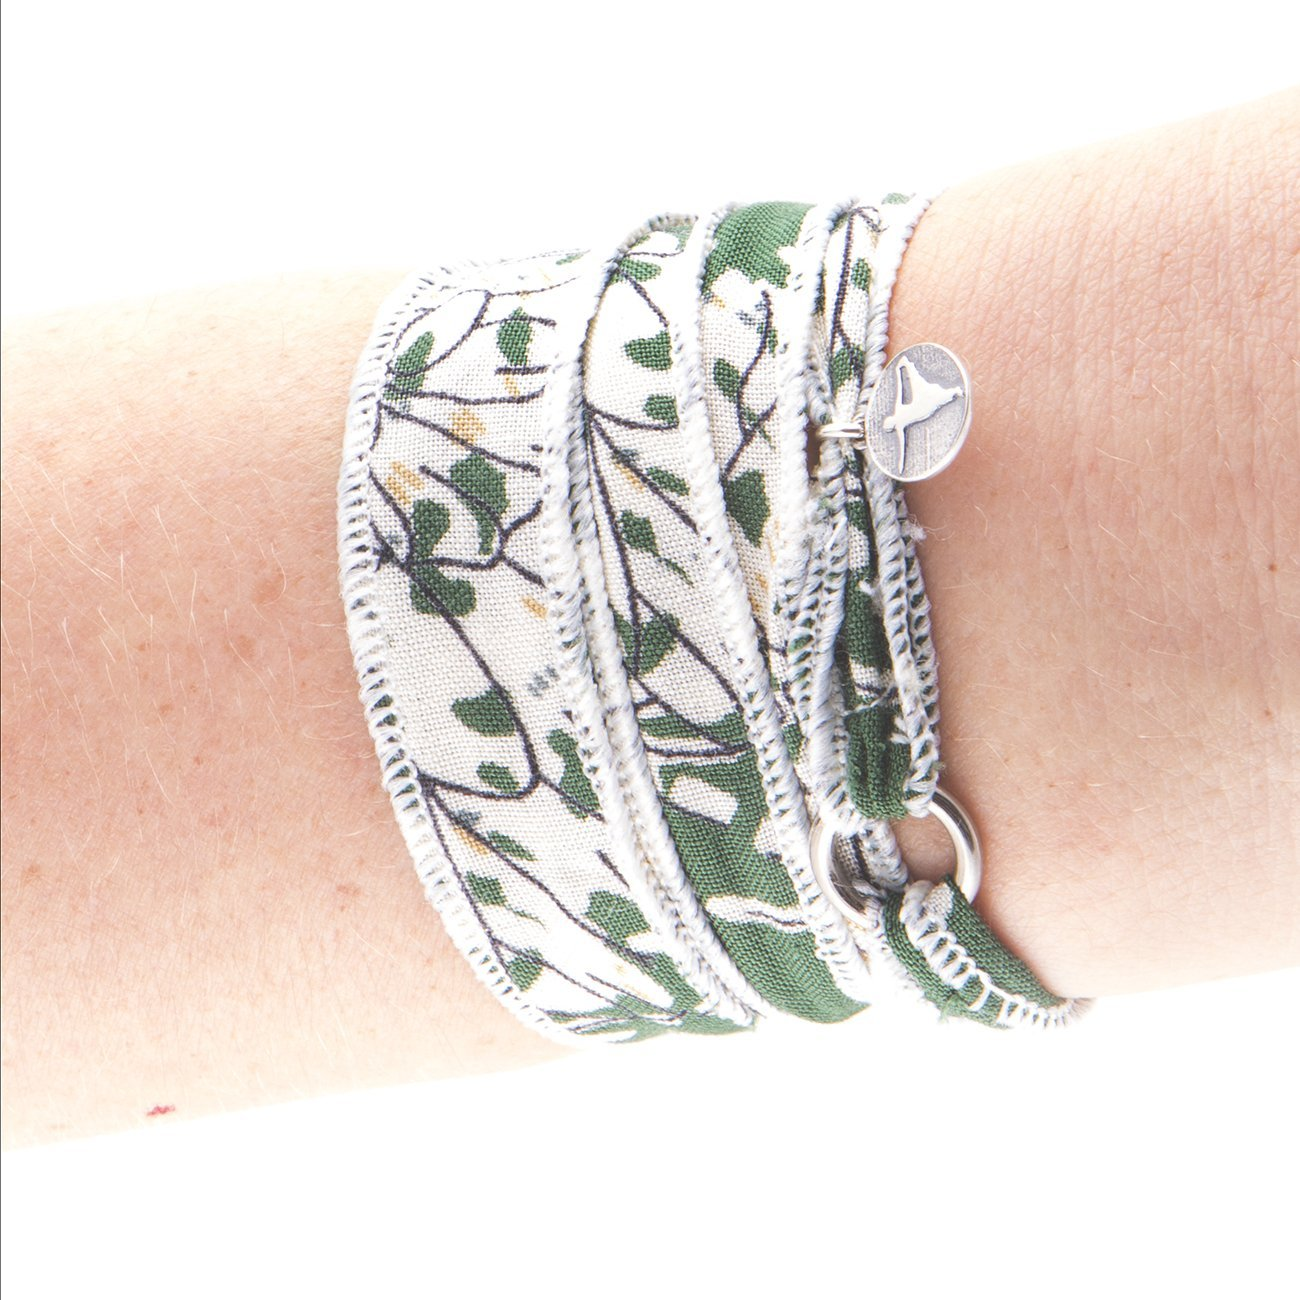 Flower Wrap Bracelets (3 PACK) by: Buddha Pants® - Buddha Pants®